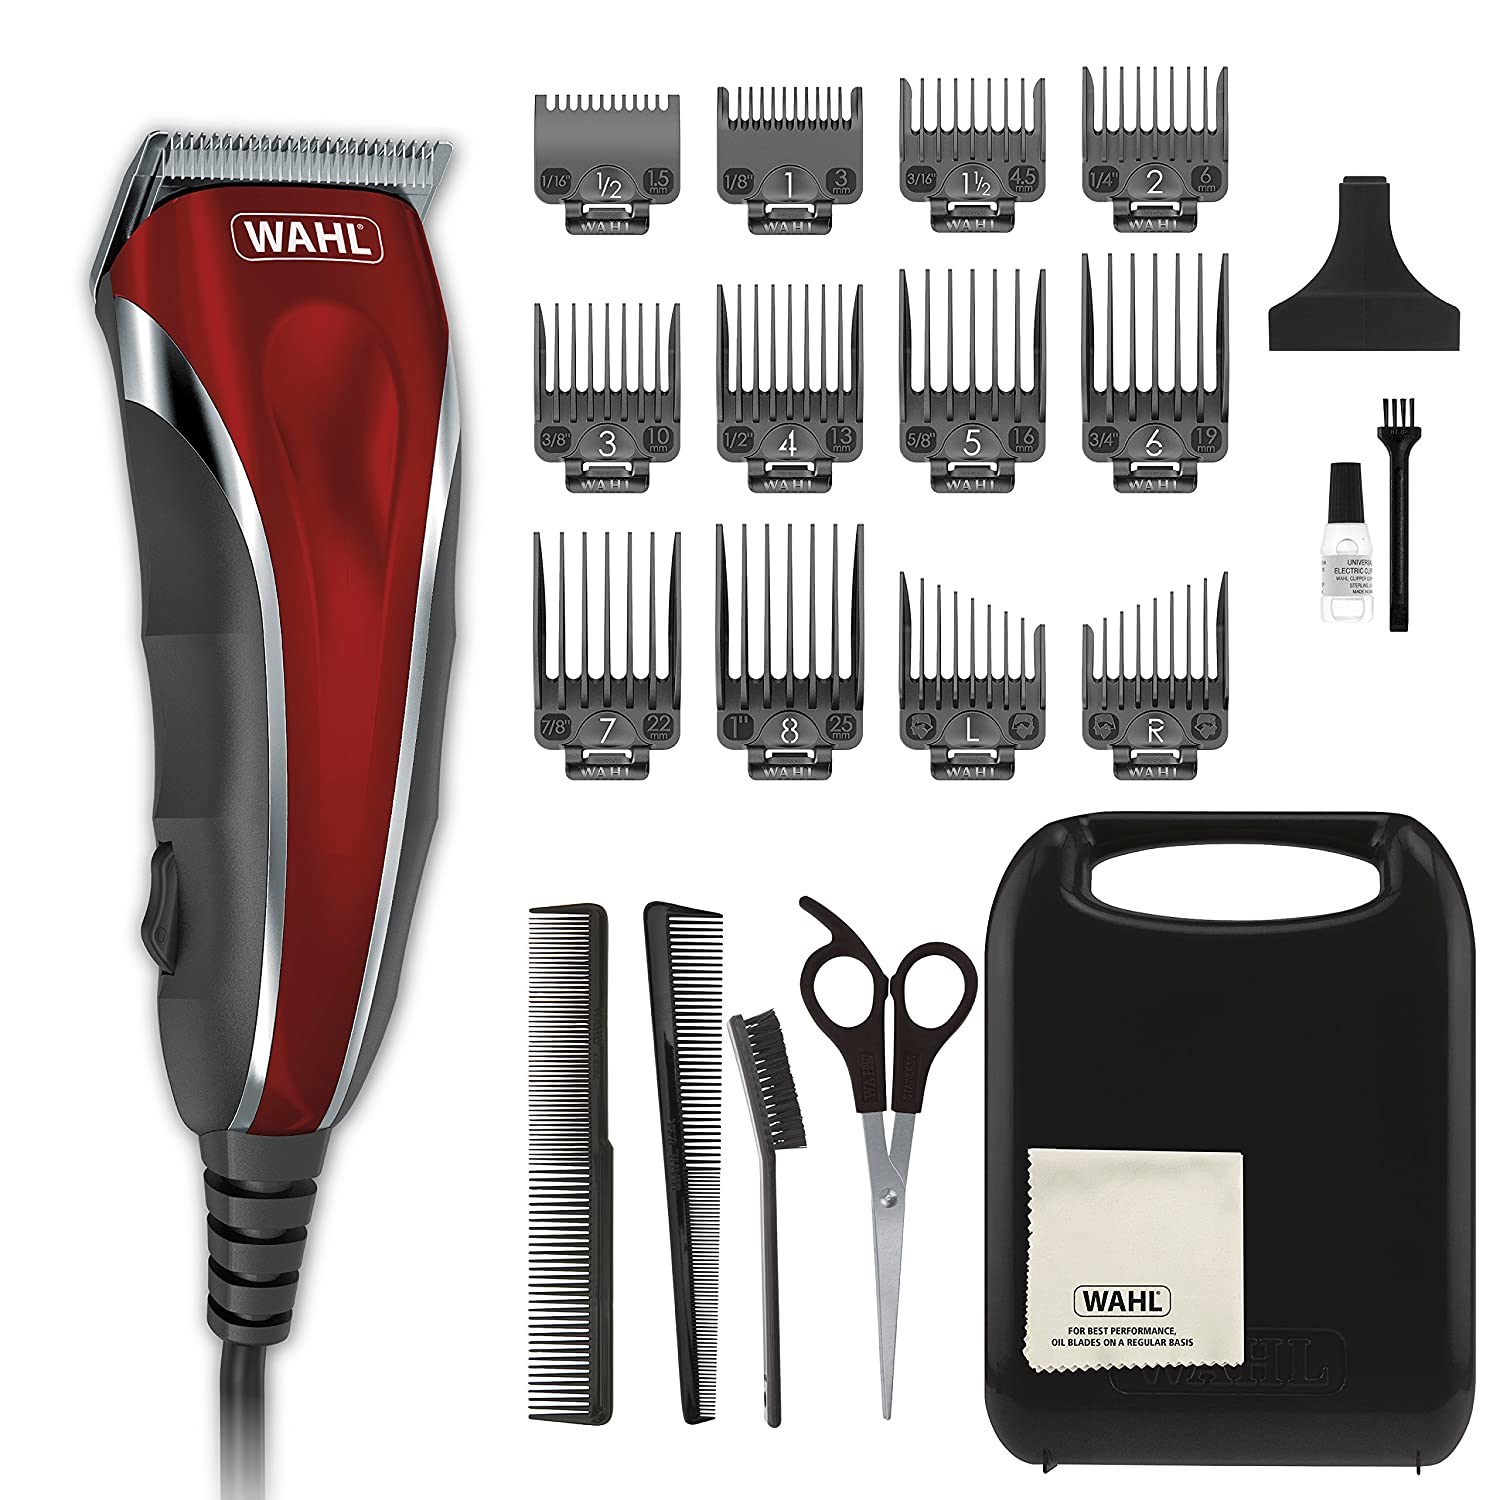 Wahl Clipper Compact Multi-Purpose Haircut, Beard Body Grooming Hair Clipper Trimmer with Extreme Power Easy Clean Blades – Model 79607